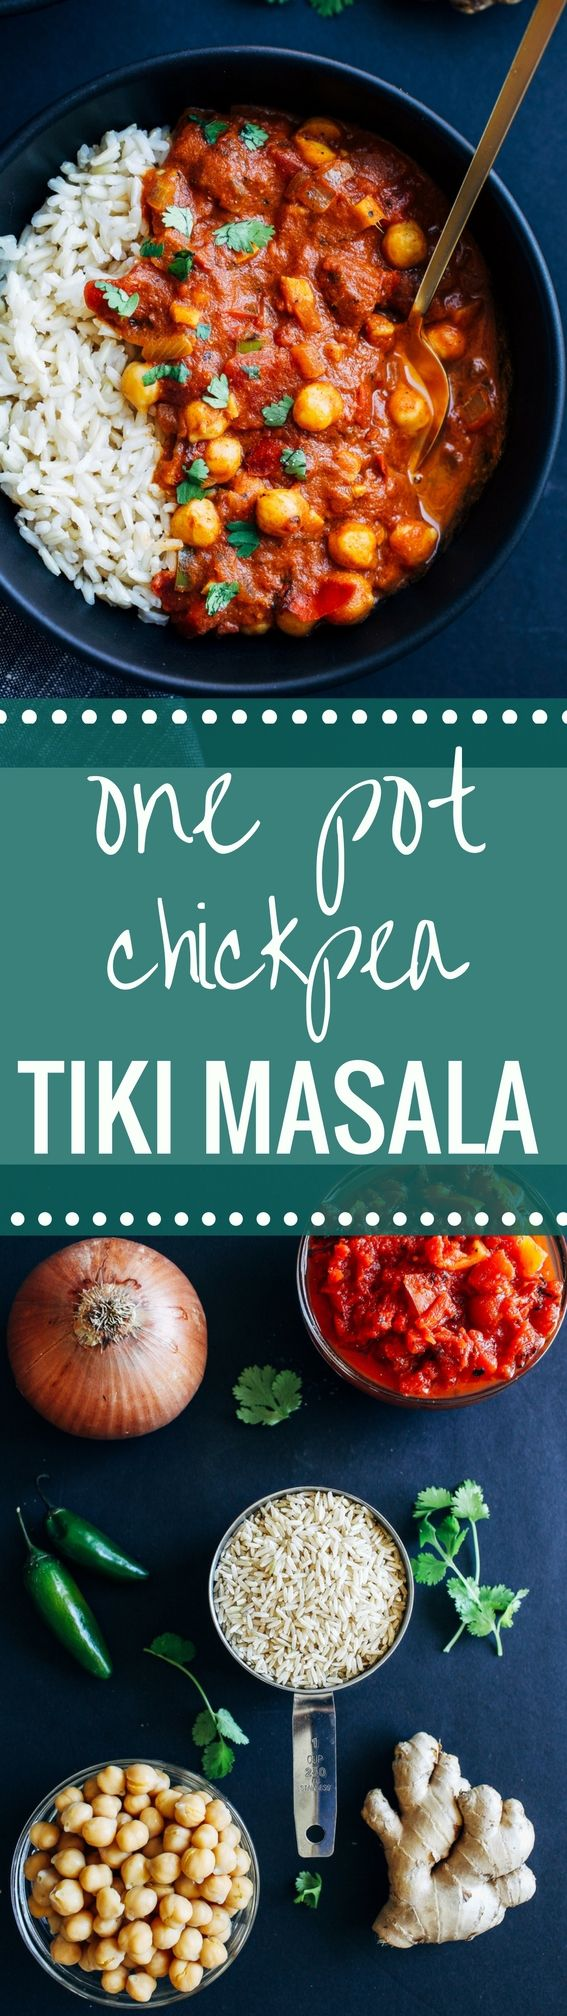 One Pot Chickpea Tiki Masala- an easy and nutritious meal made with ...